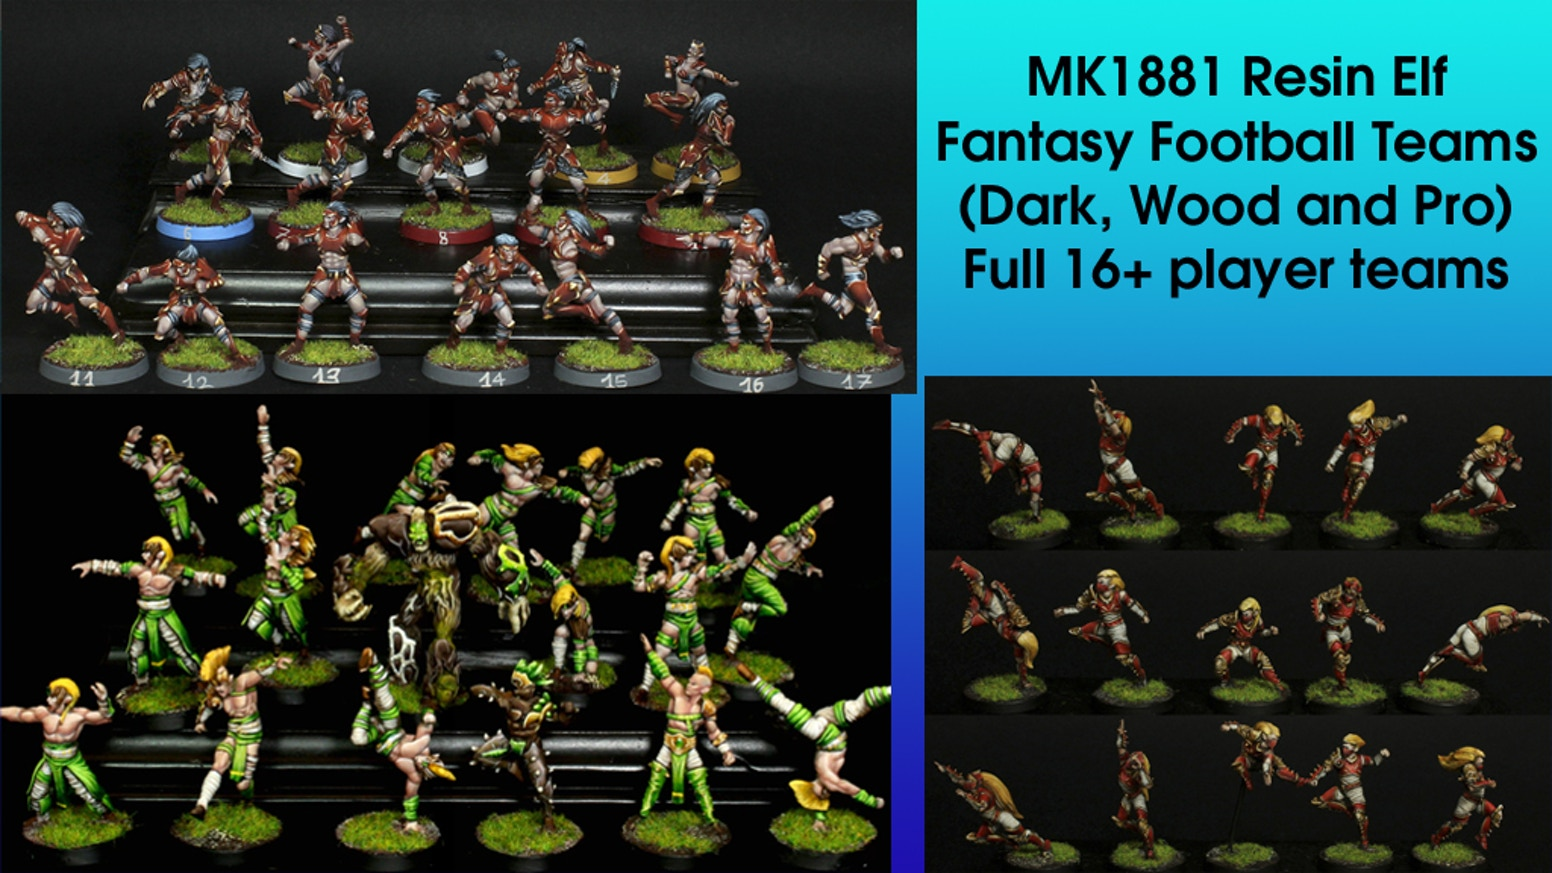 Bringing 3 of the MK1881 line of 32mm scale Elf Fantasy Football full 16 figure teams to affordable resin.